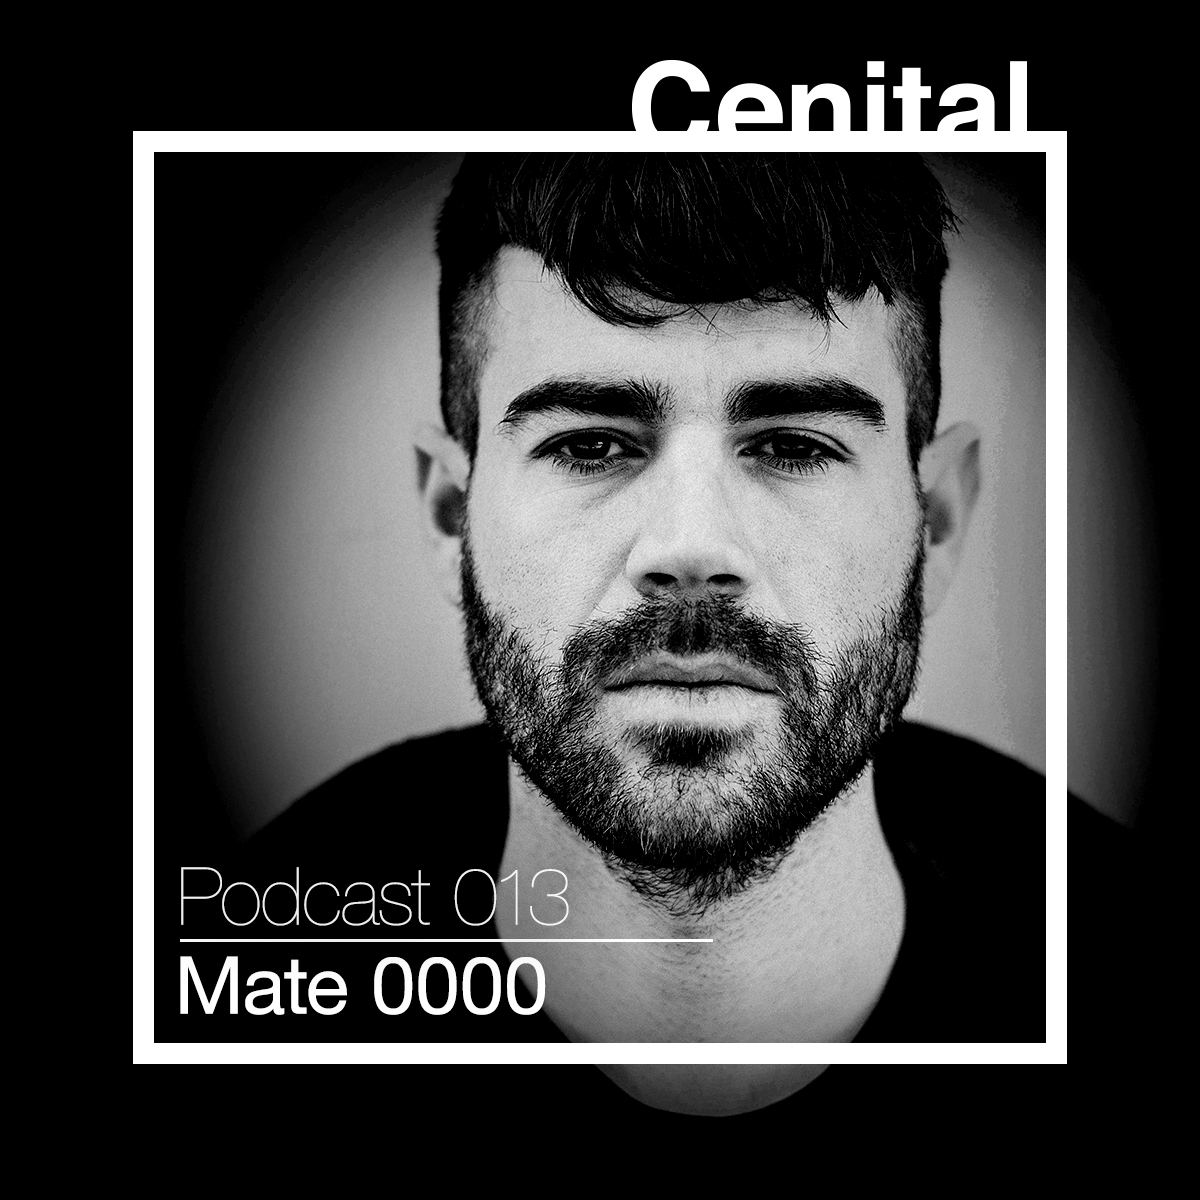 Cenital Podcast 013 - MATE 0000